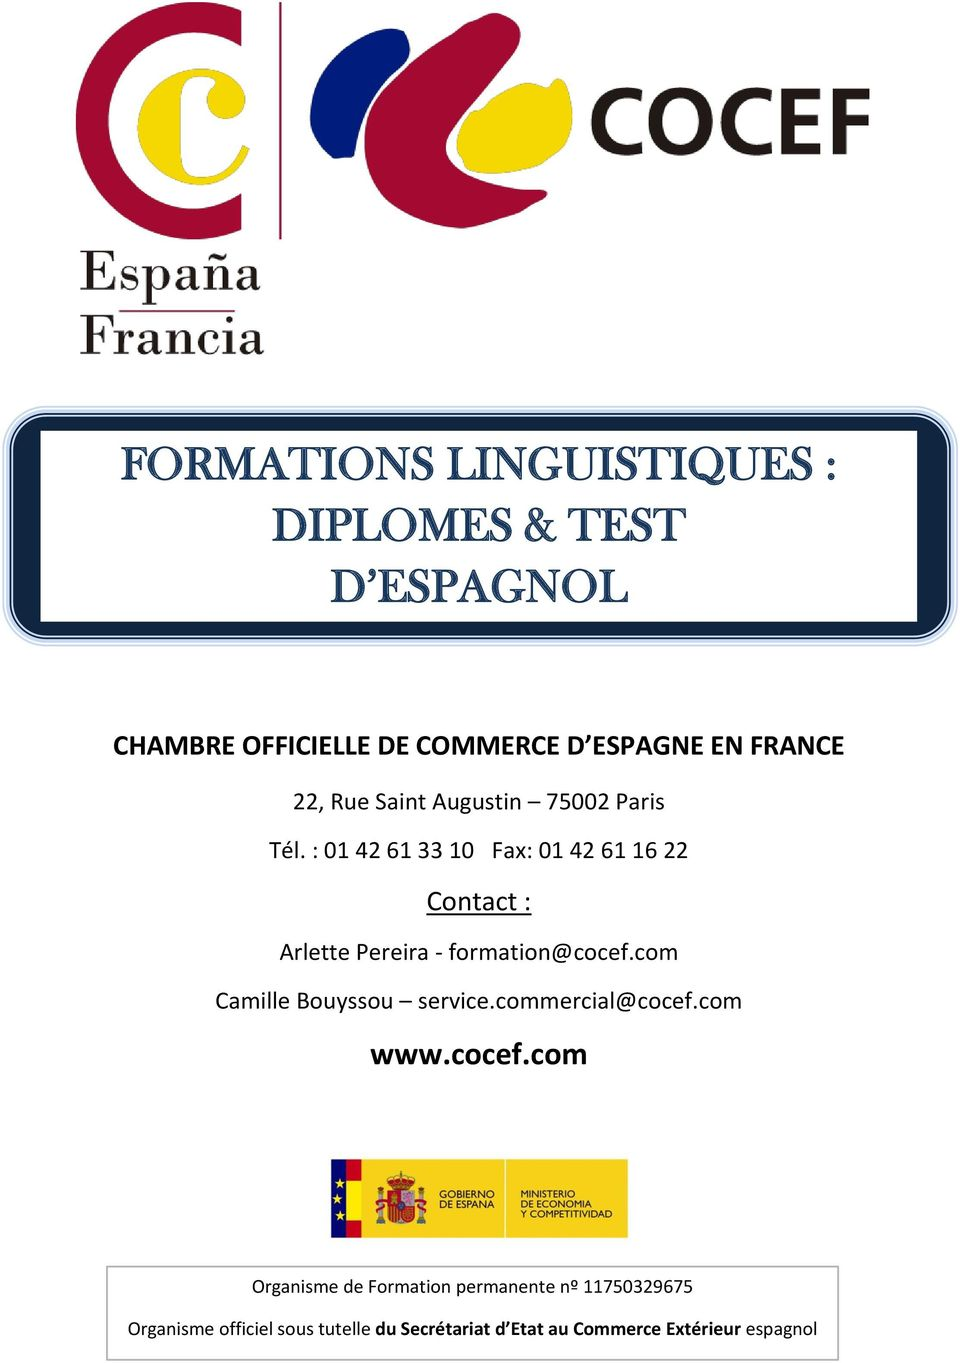 : 01 42 61 33 10 Fax: 01 42 61 16 22 Contact : Arlette Pereira - formation@cocef.